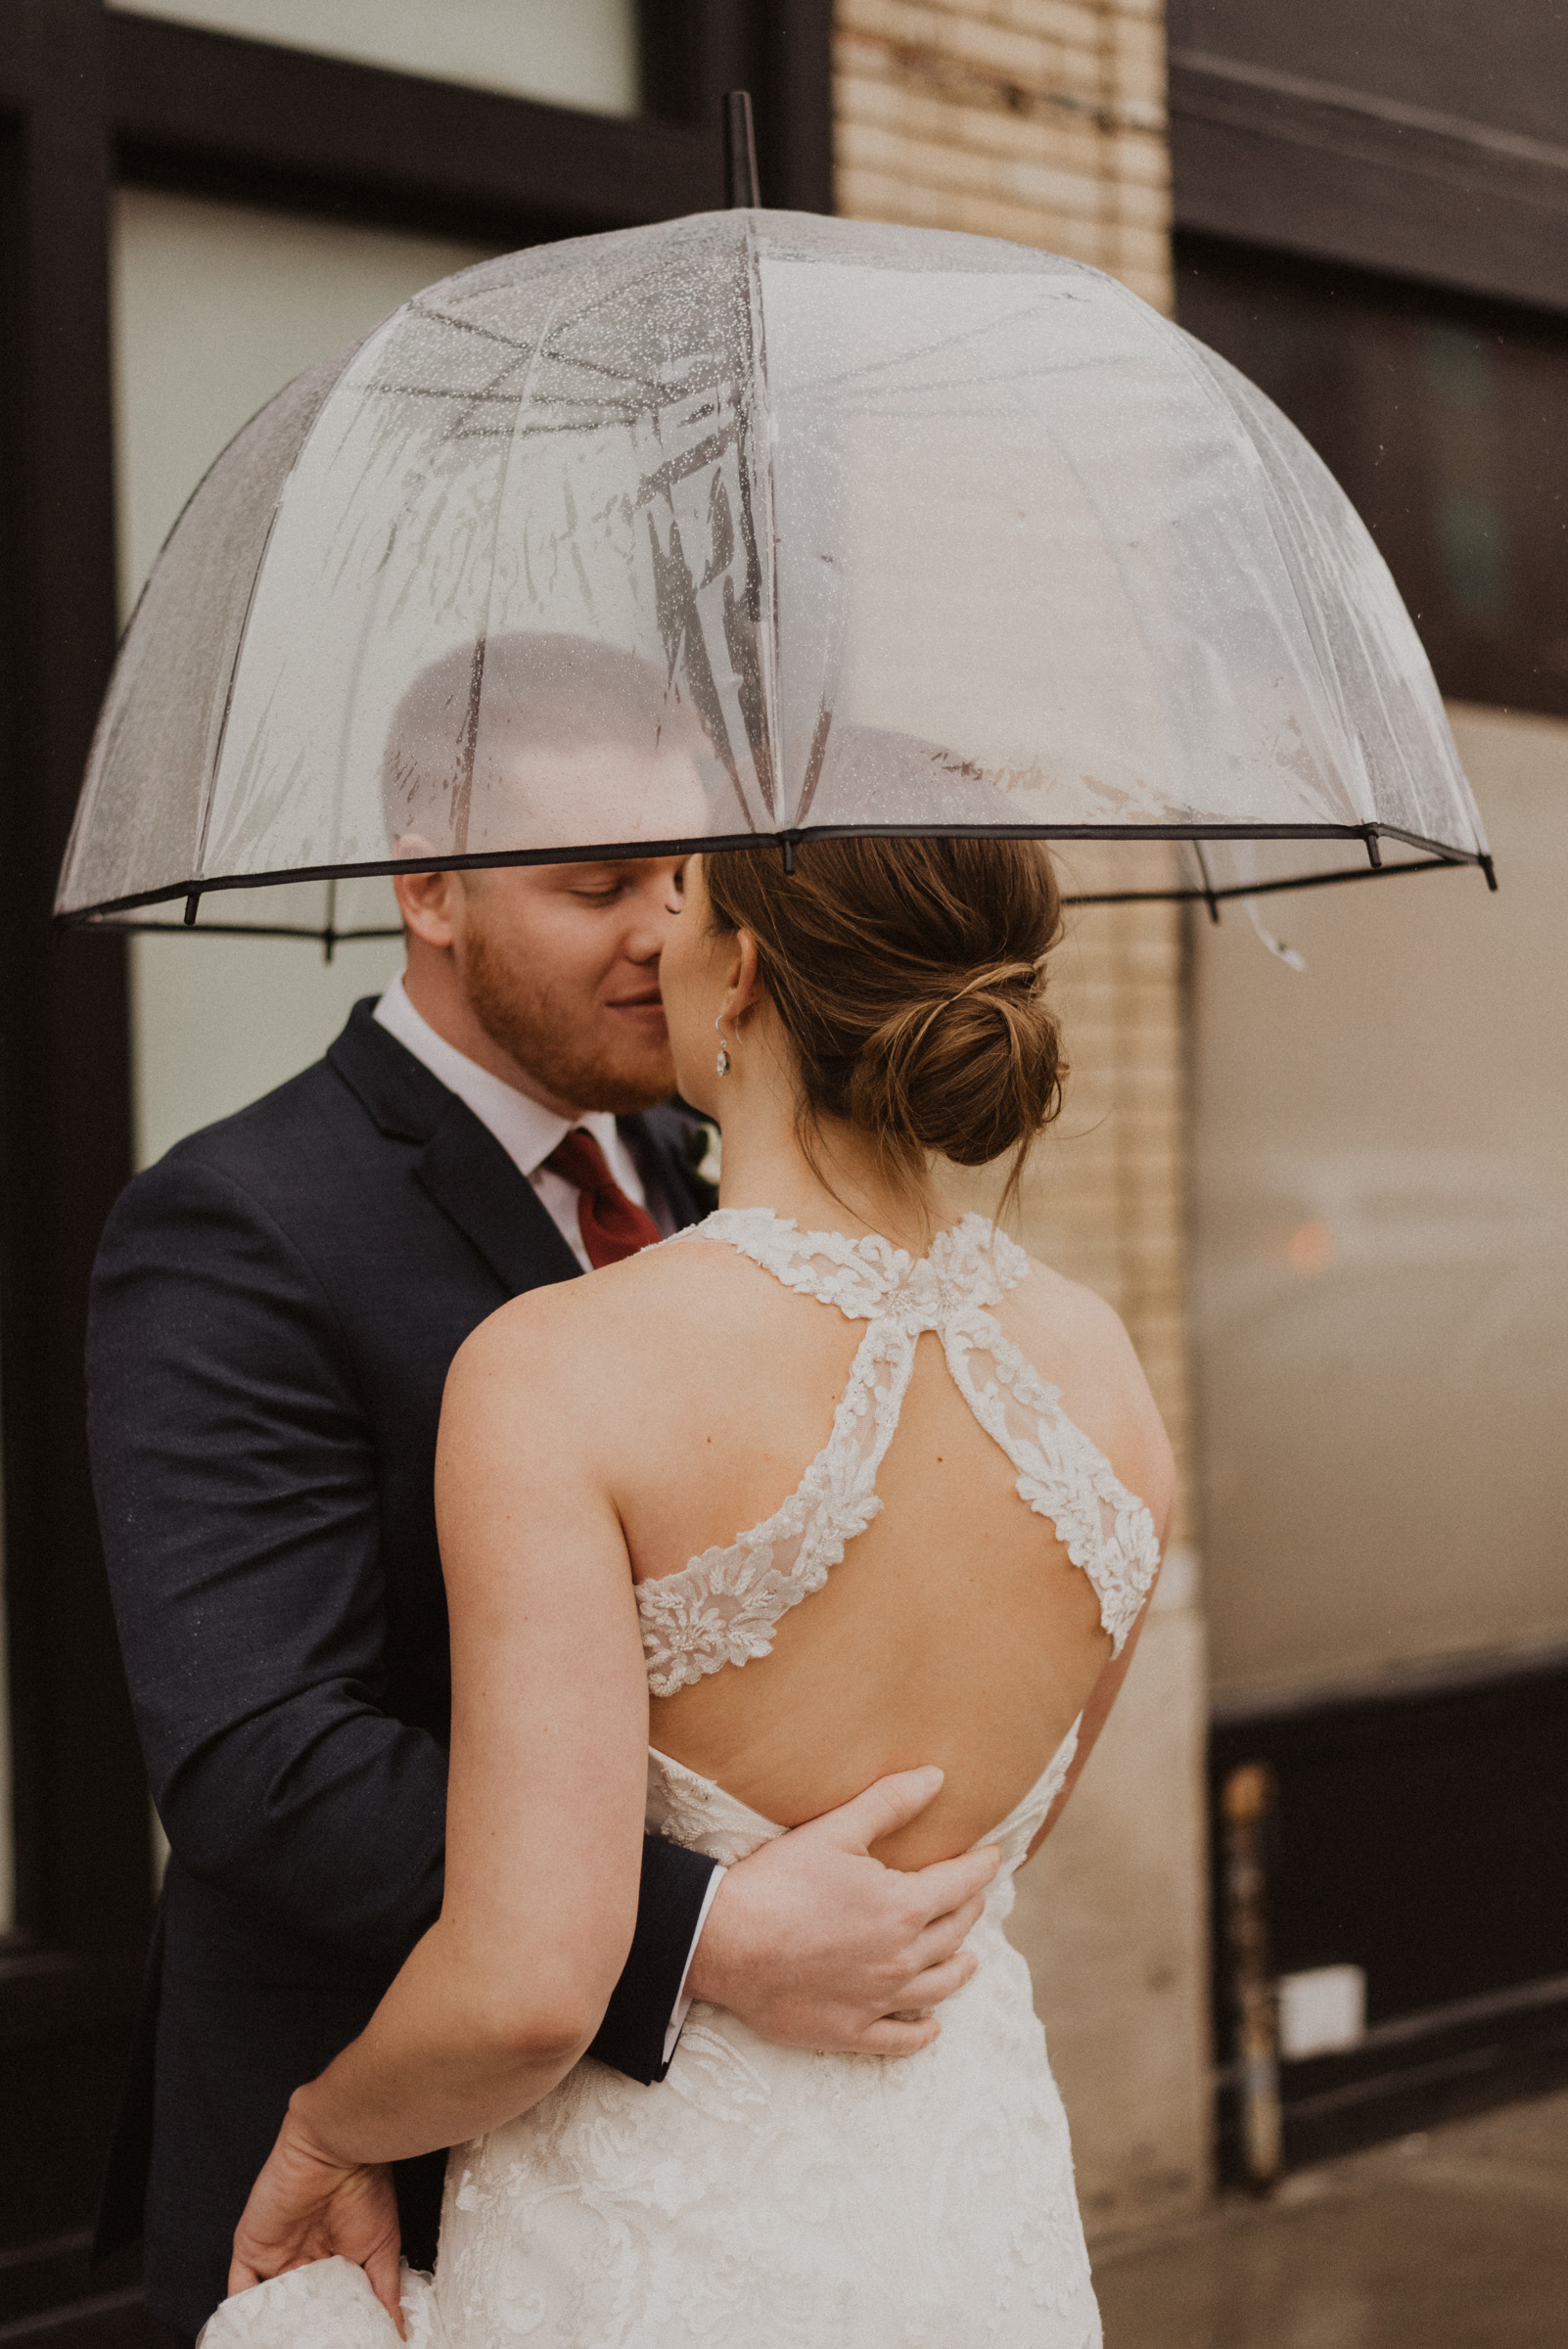 alyssa barletter photography 2016 main kansas city wedding rainy day photographer grace and justin magott-30.jpg